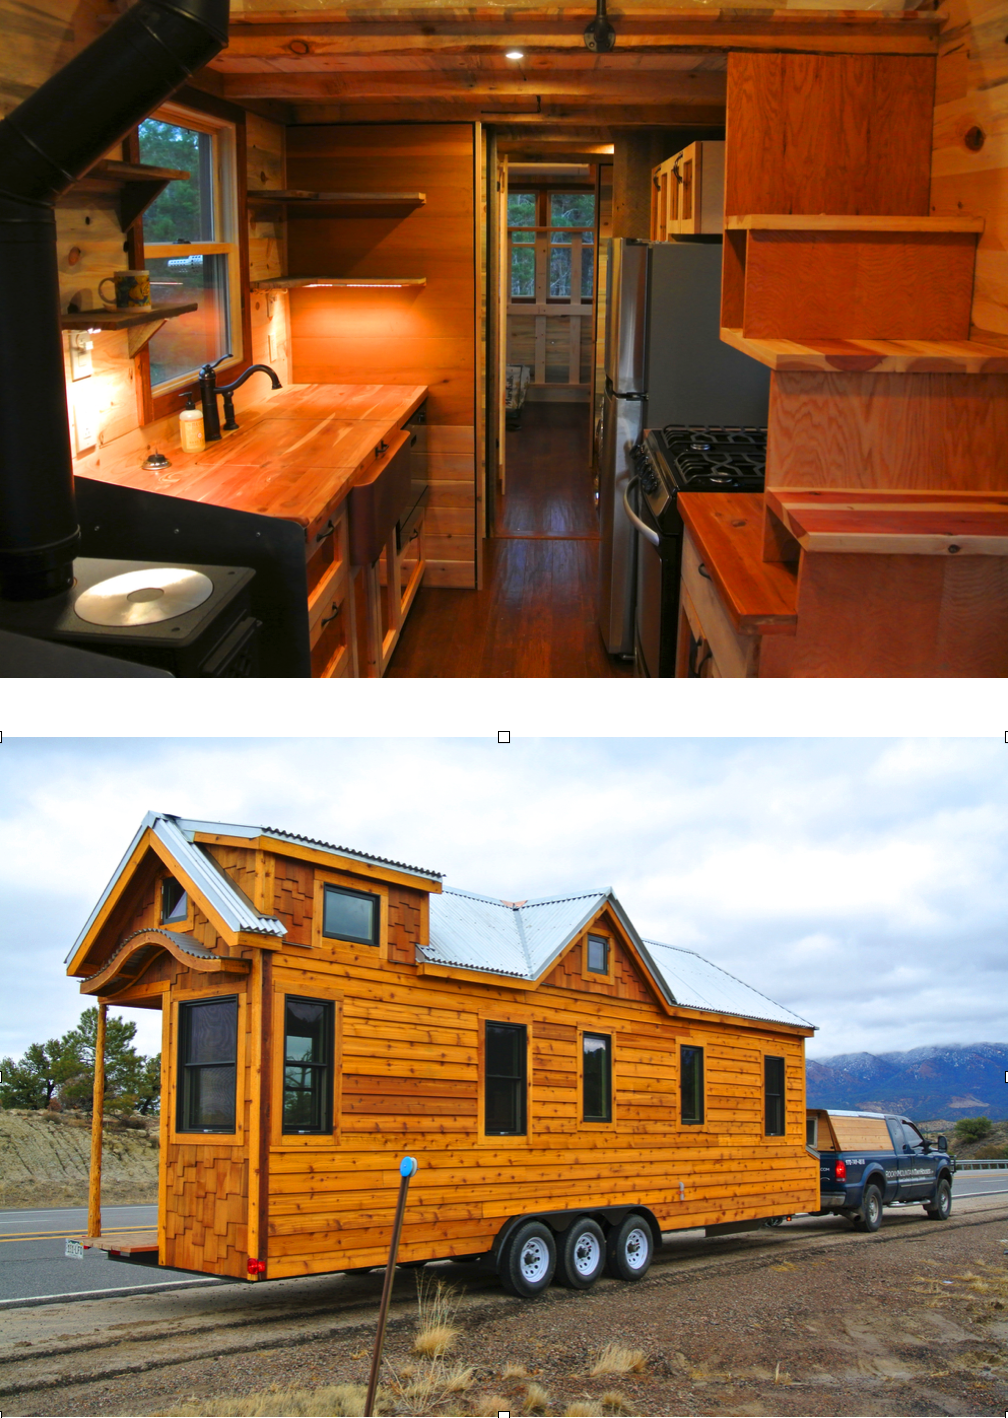 2 Bedroom Trailers For Sale: In Search Of The Perfect Tiny House